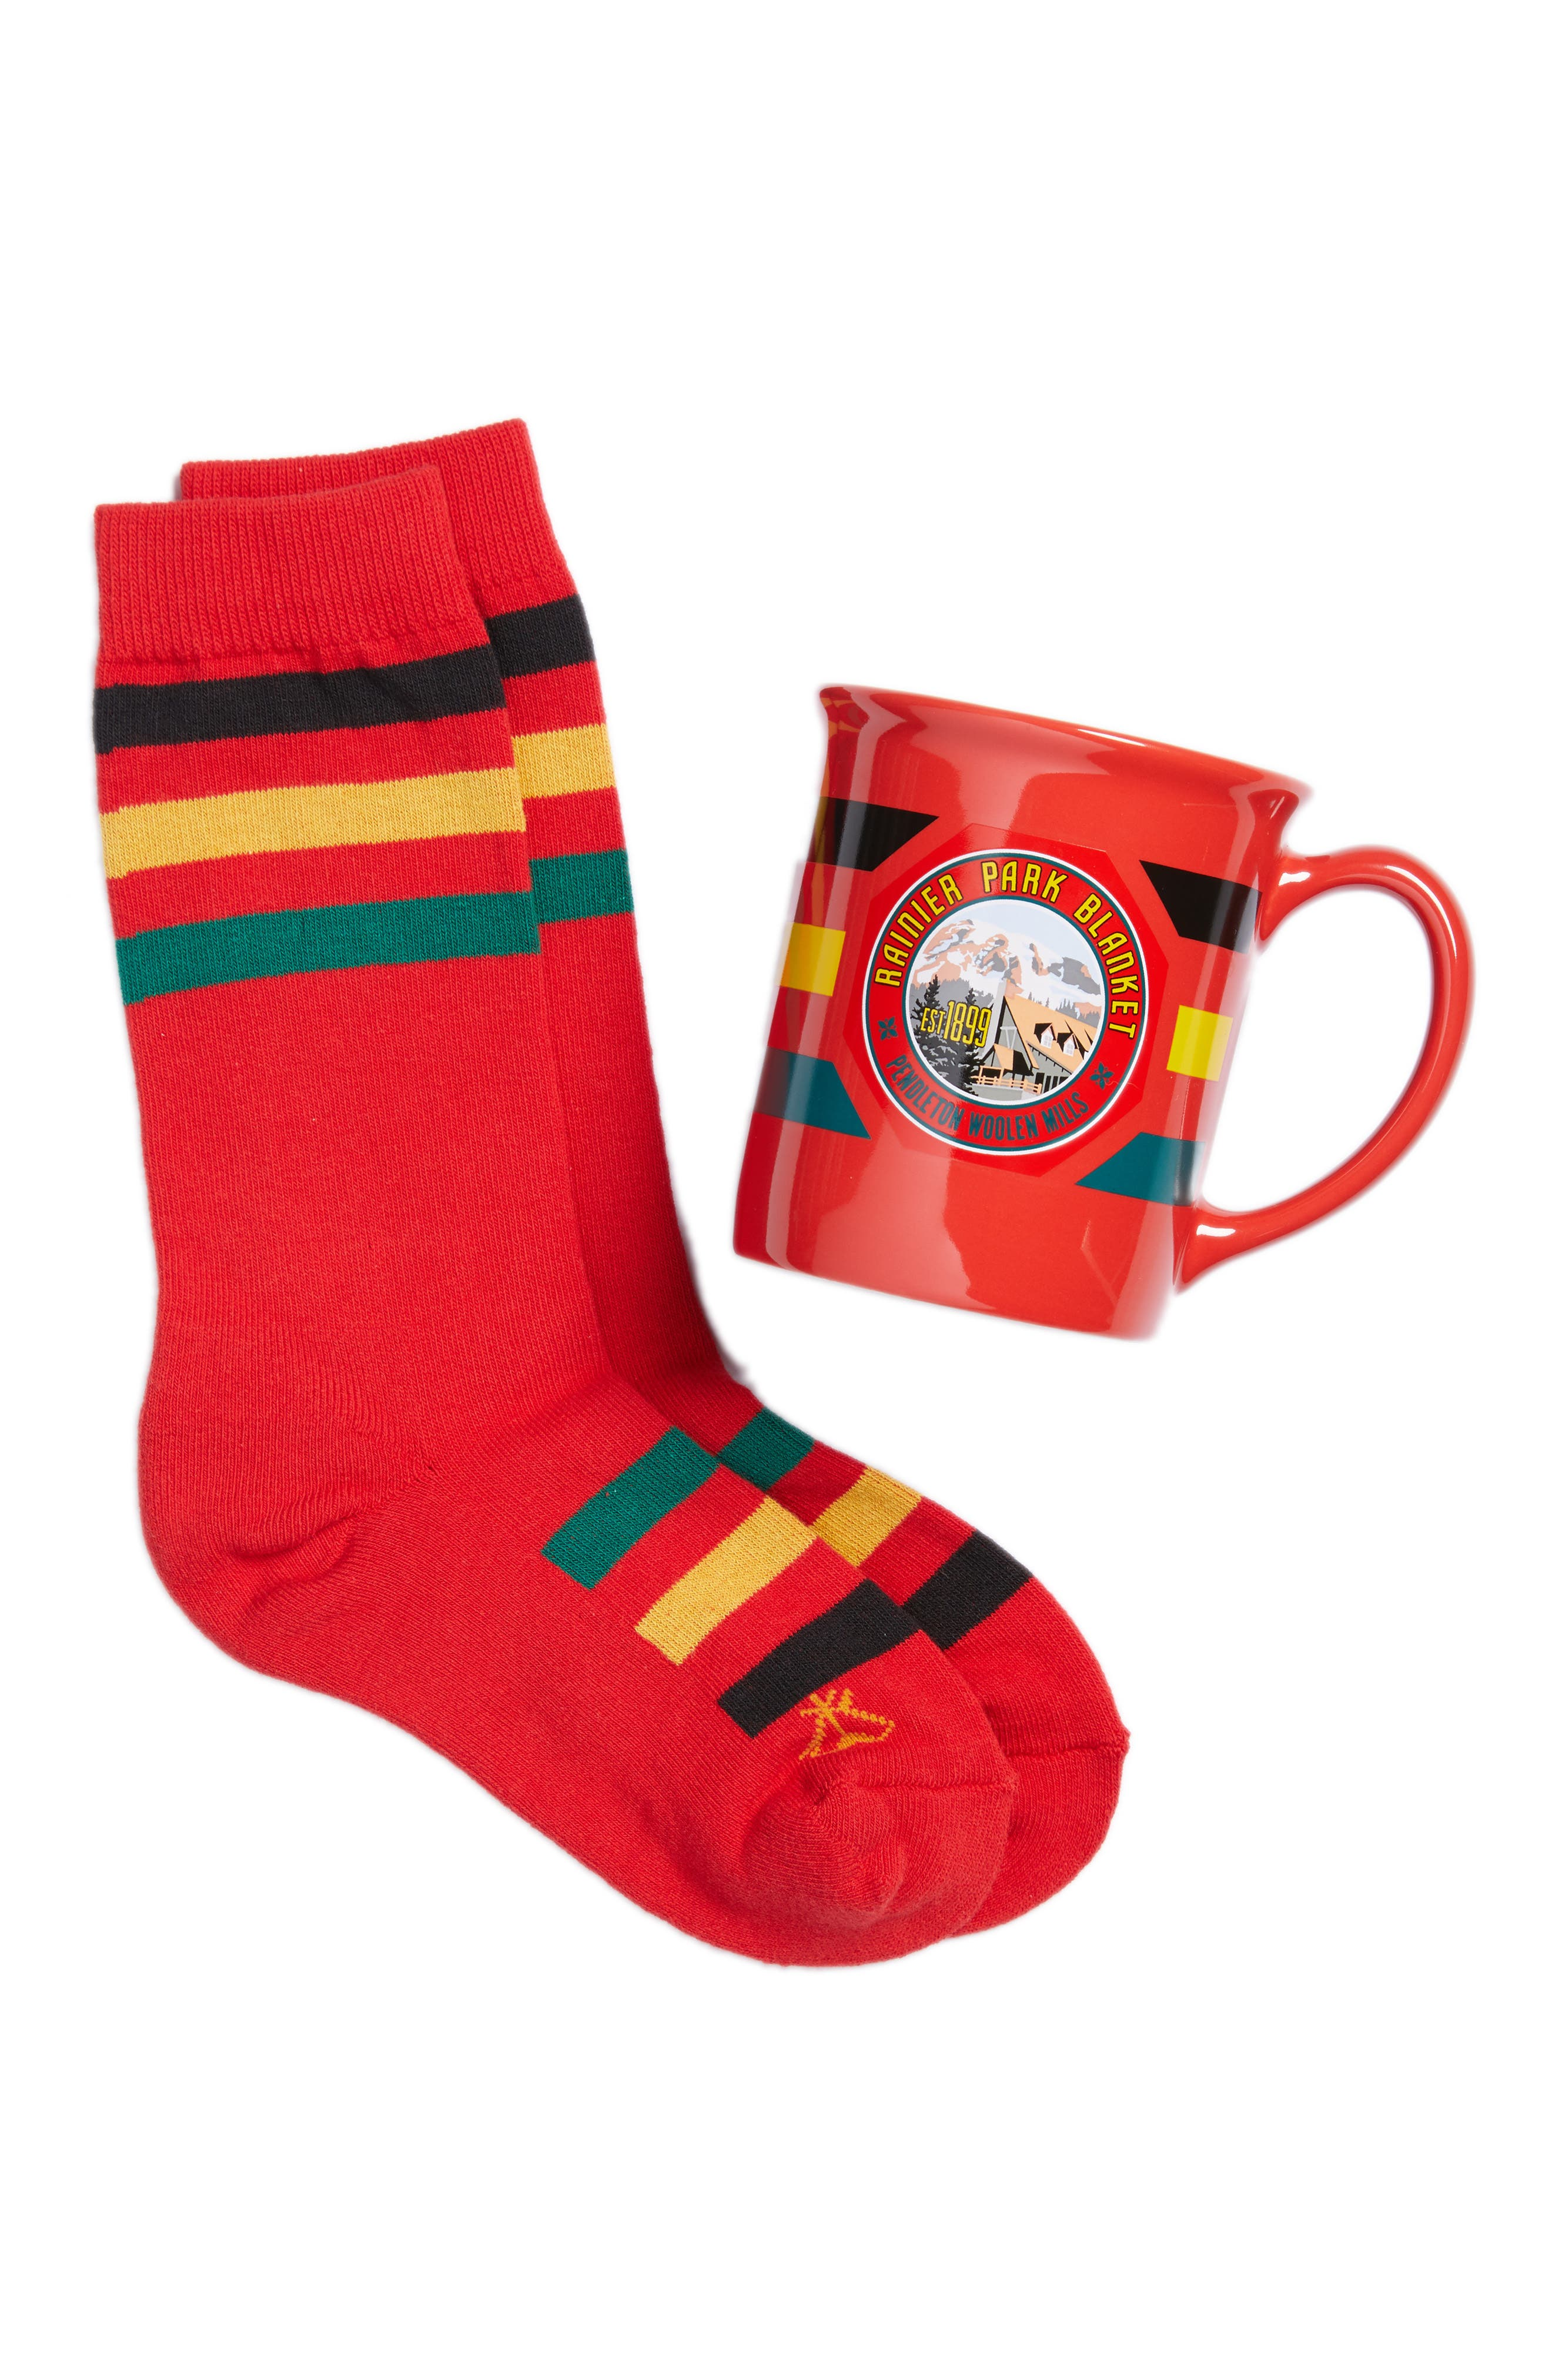 Pendleton National Park Mug & Socks Gift Set